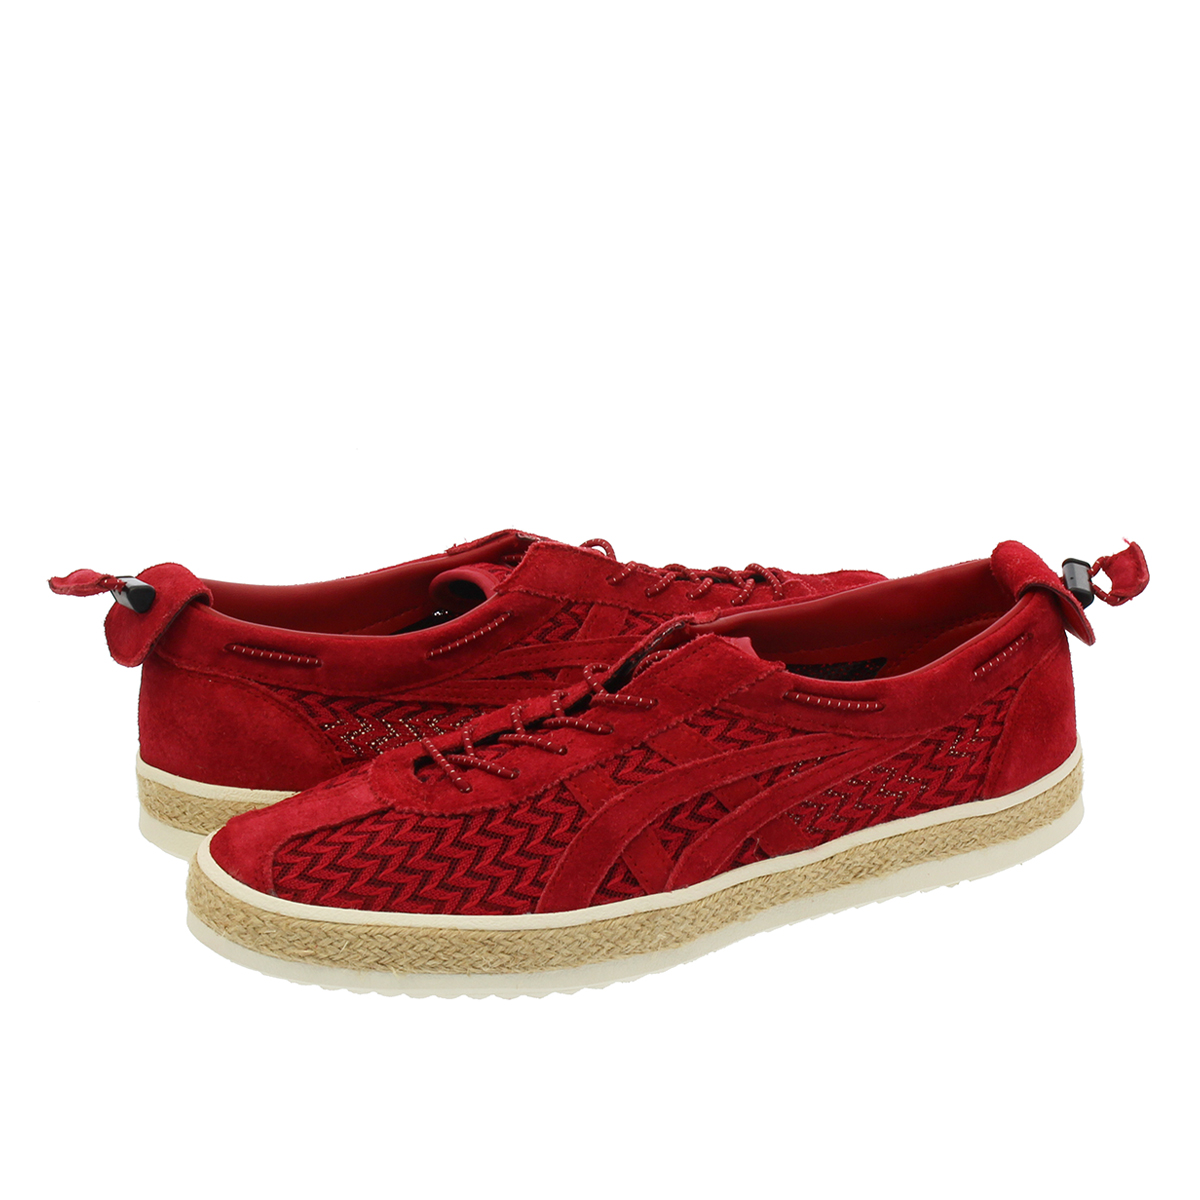 Onitsuka Tiger DELEGATION LIGHT オニツカタイガー デレゲーション ライト CLASSIC RED/CLASSIC RED